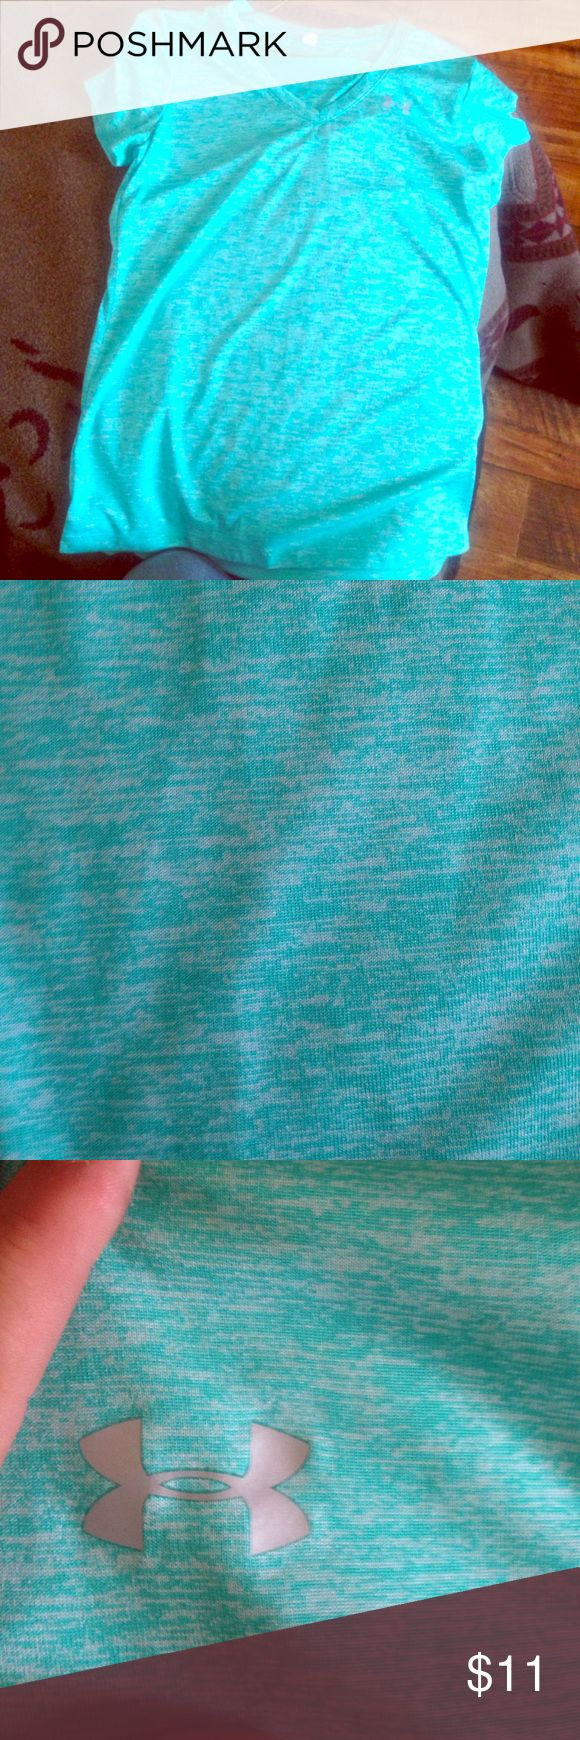 Under Armour V-neck Mint green shirt Worn once Under Armour Tops Tees - Short Sleeve